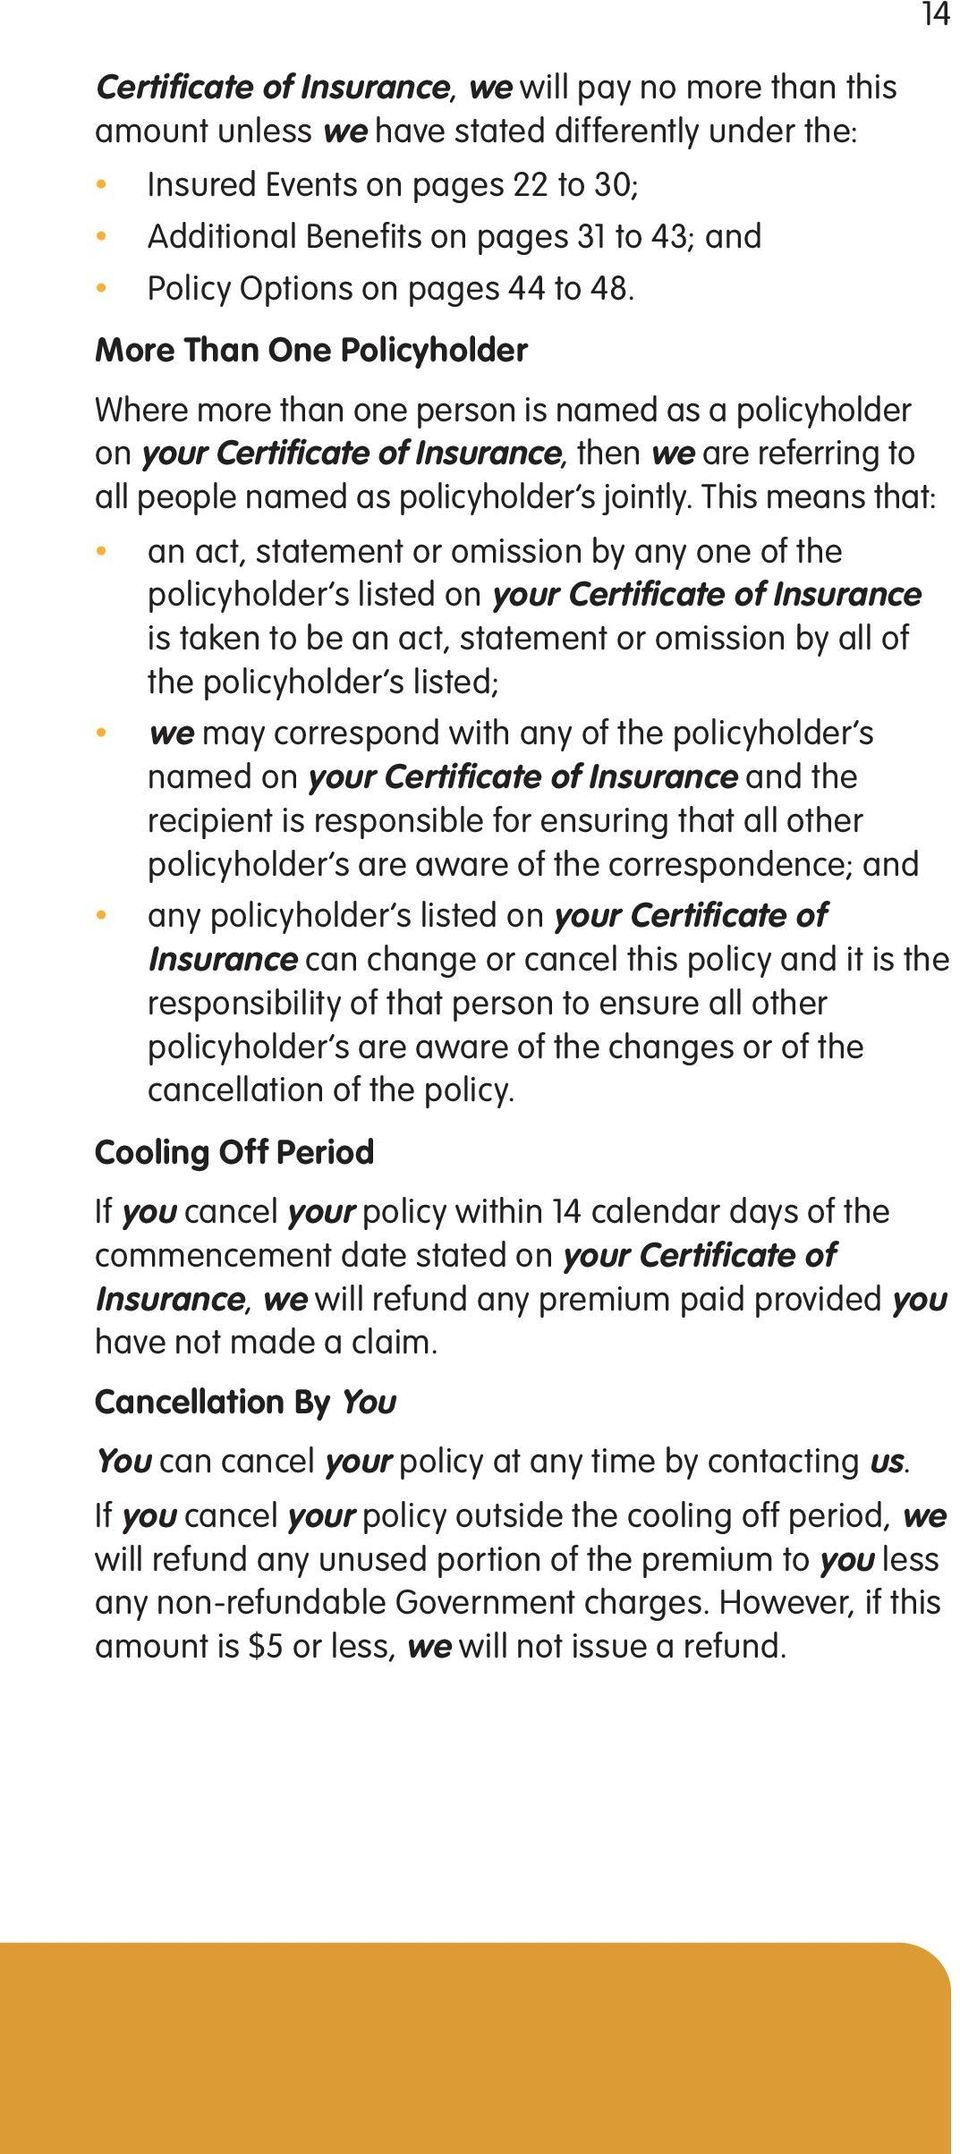 14 More Than One Policyholder Where more than one person is named as a policyholder on your Certificate of Insurance, then we are referring to all people named as policyholder s jointly.